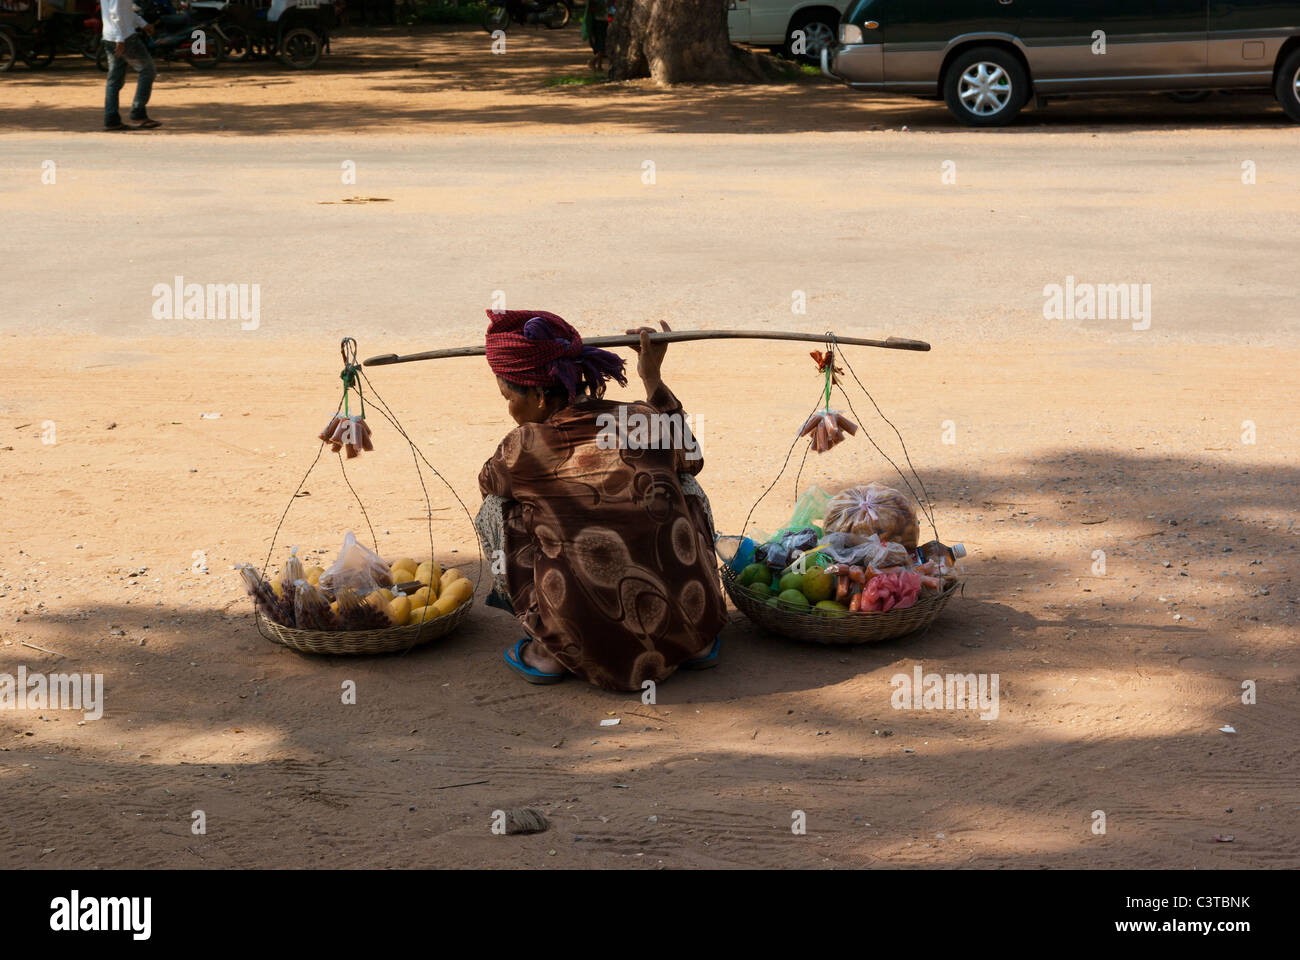 Old lady selling fruits on the street near Angkor Wat, Siem Reap, Cambodia - Stock Image